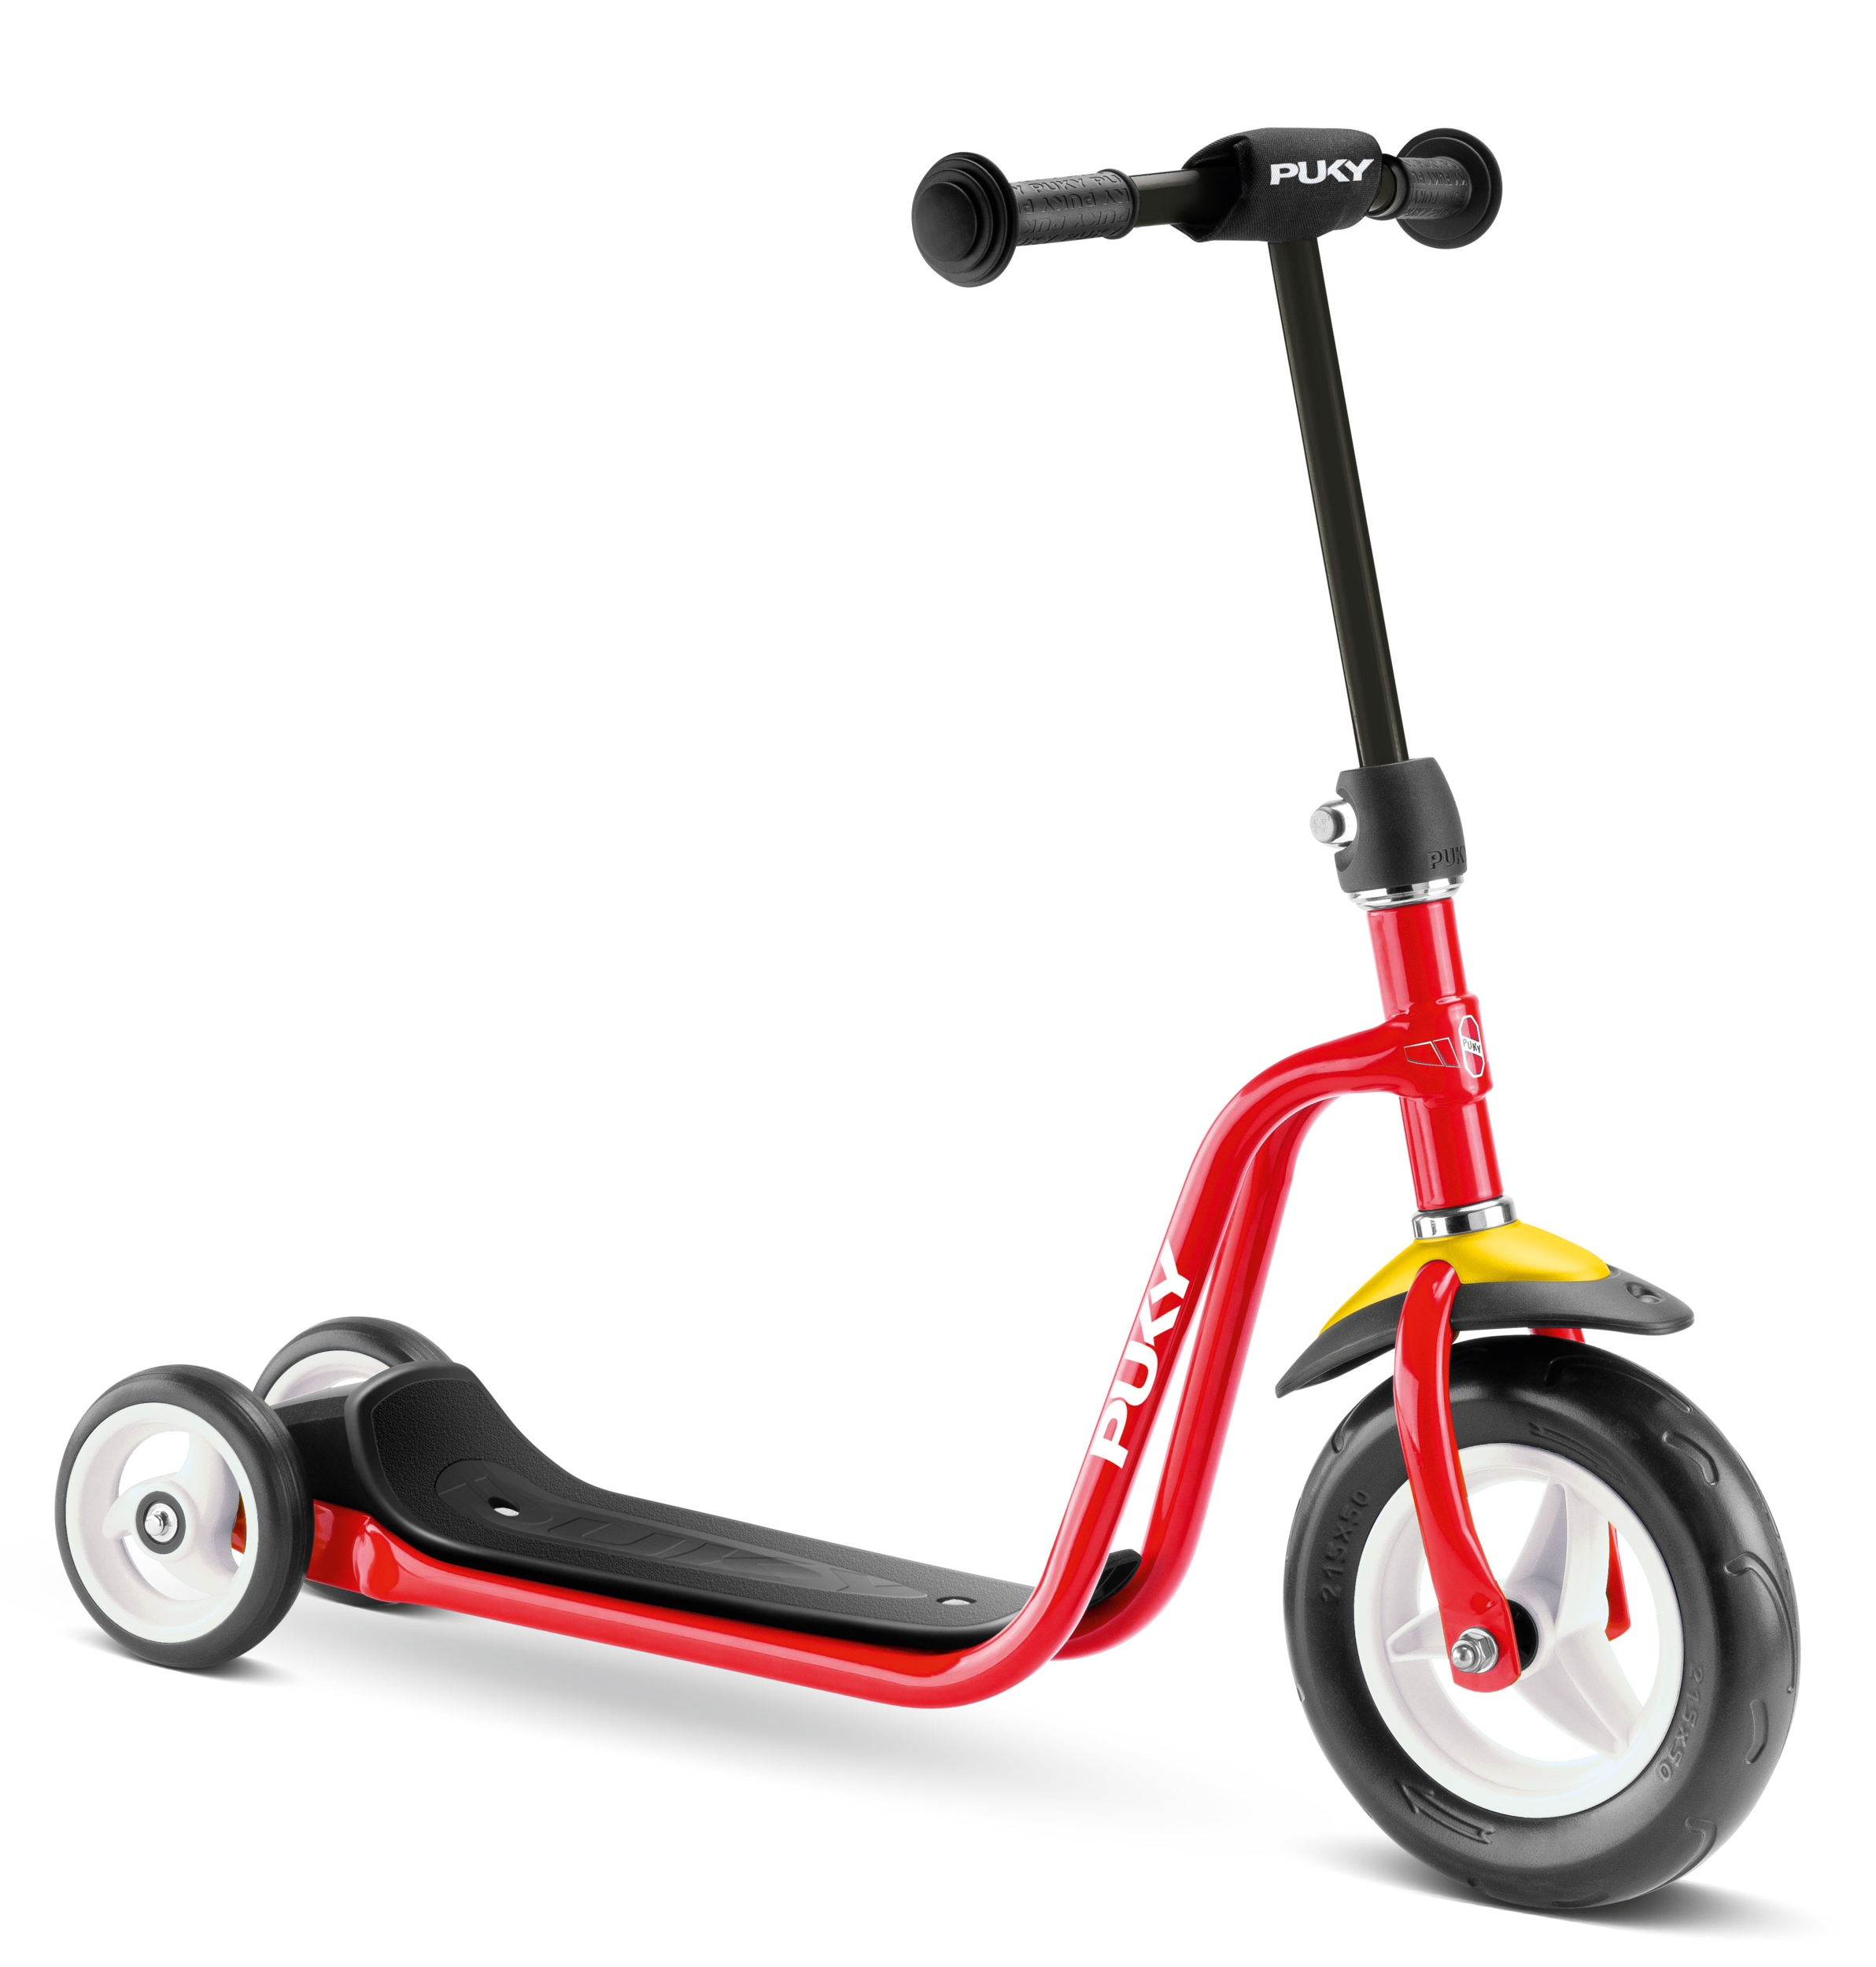 R1 Rouge 3 Roues trottinette PUKY